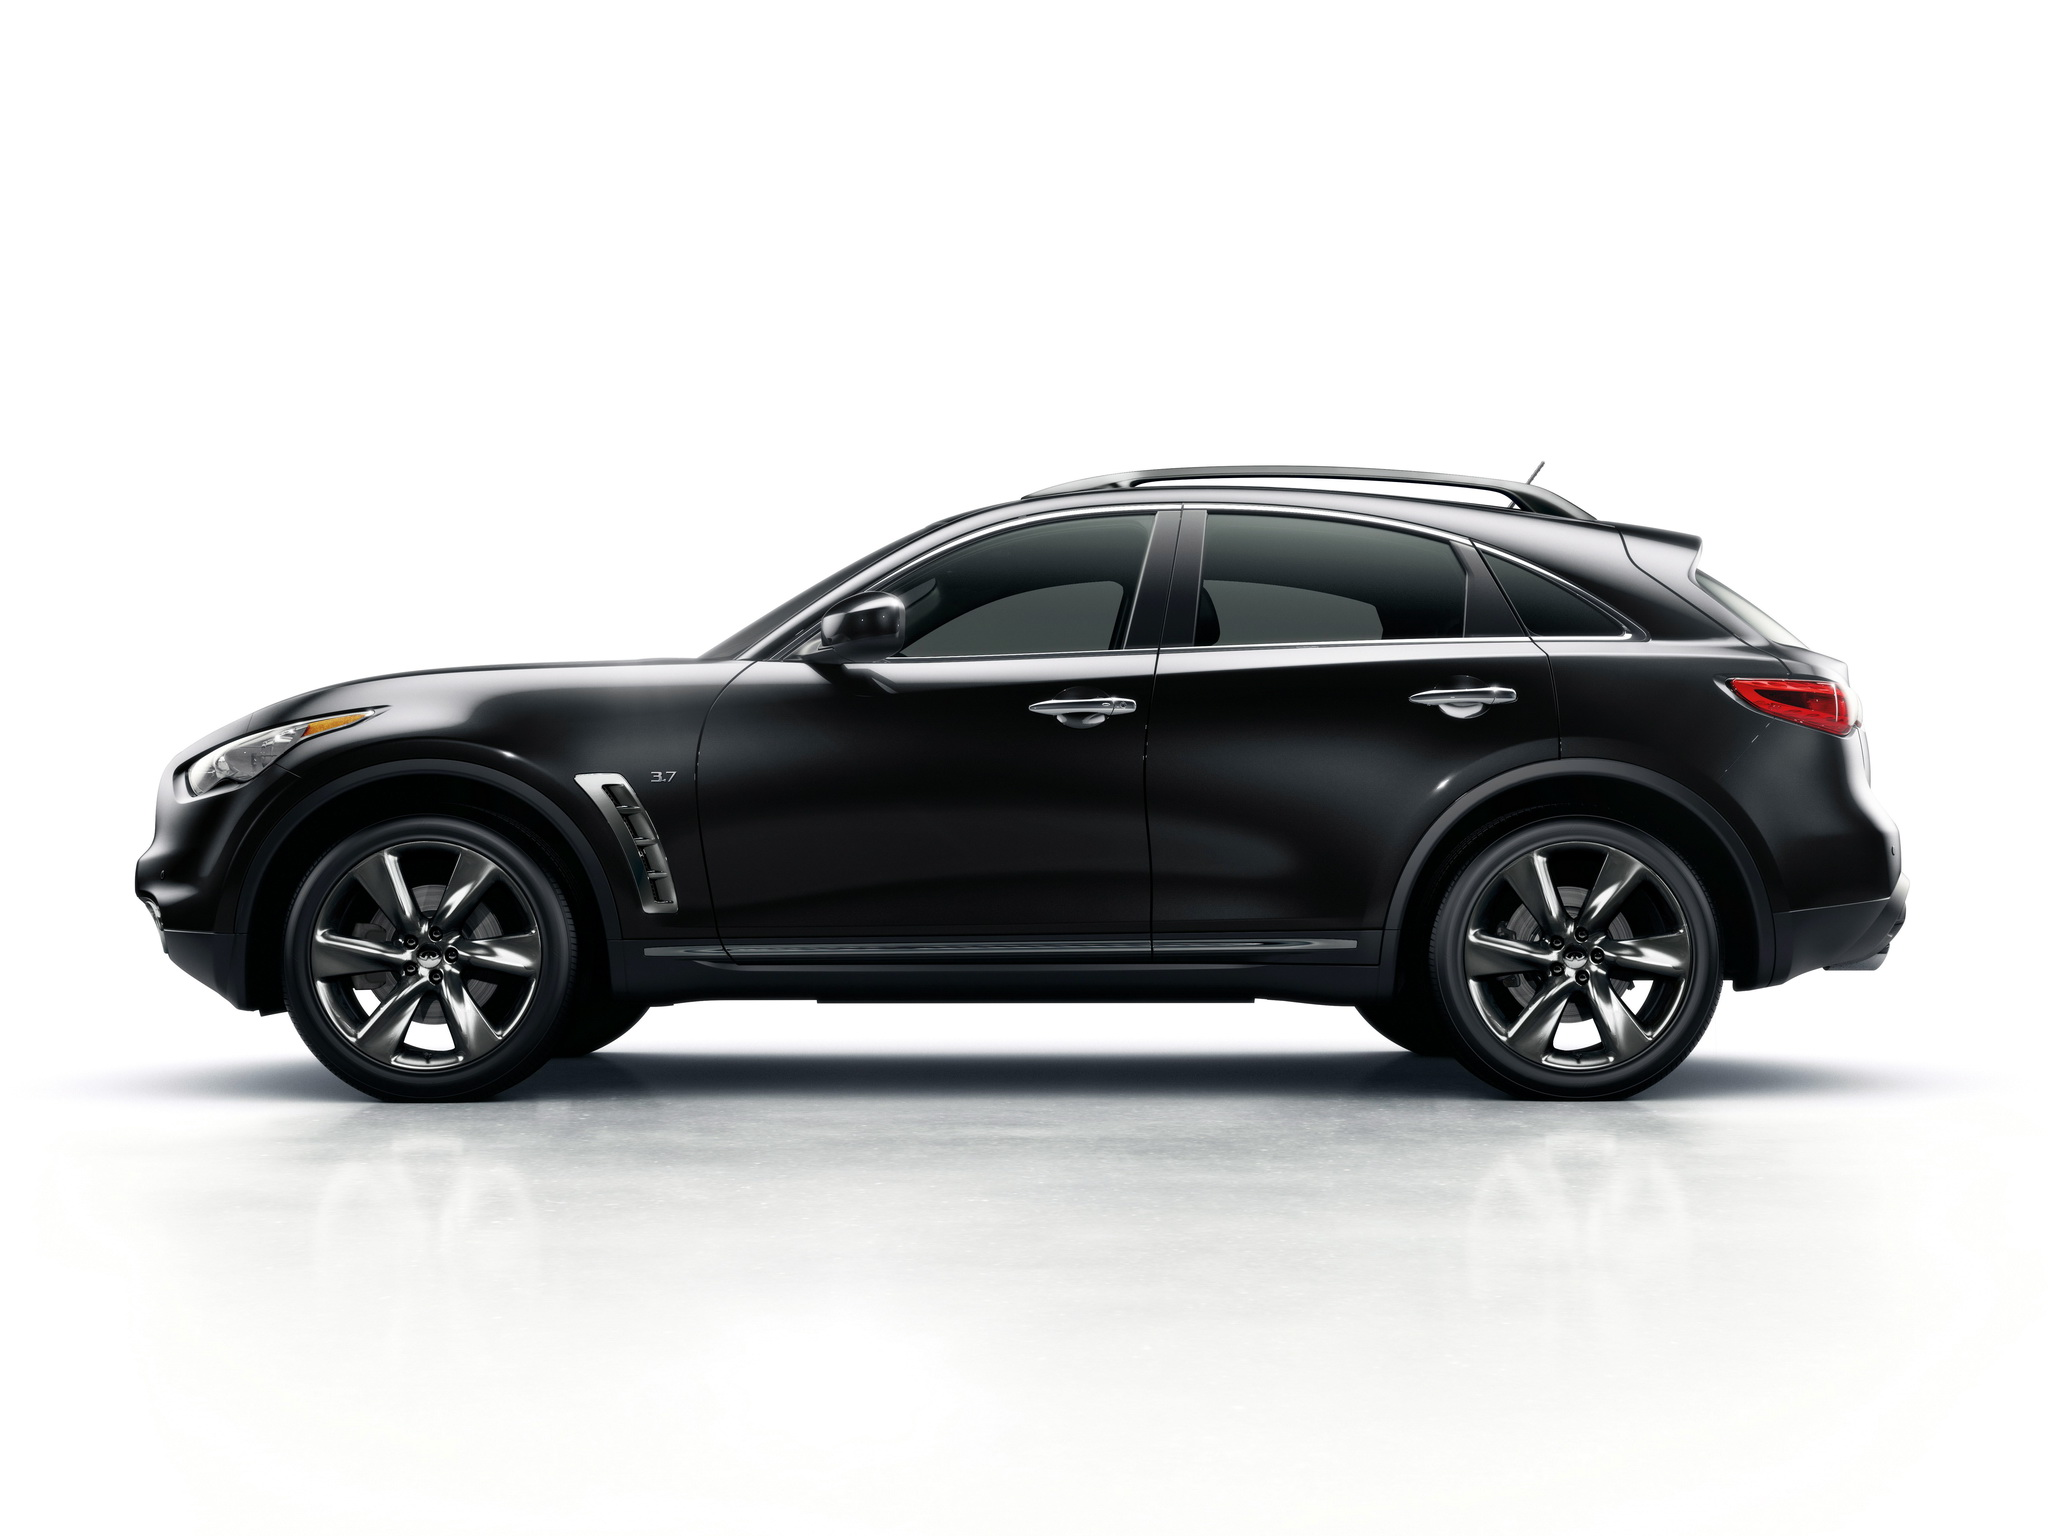 infiniti qx70 discontinued  replacement expected in 2021 or 2022